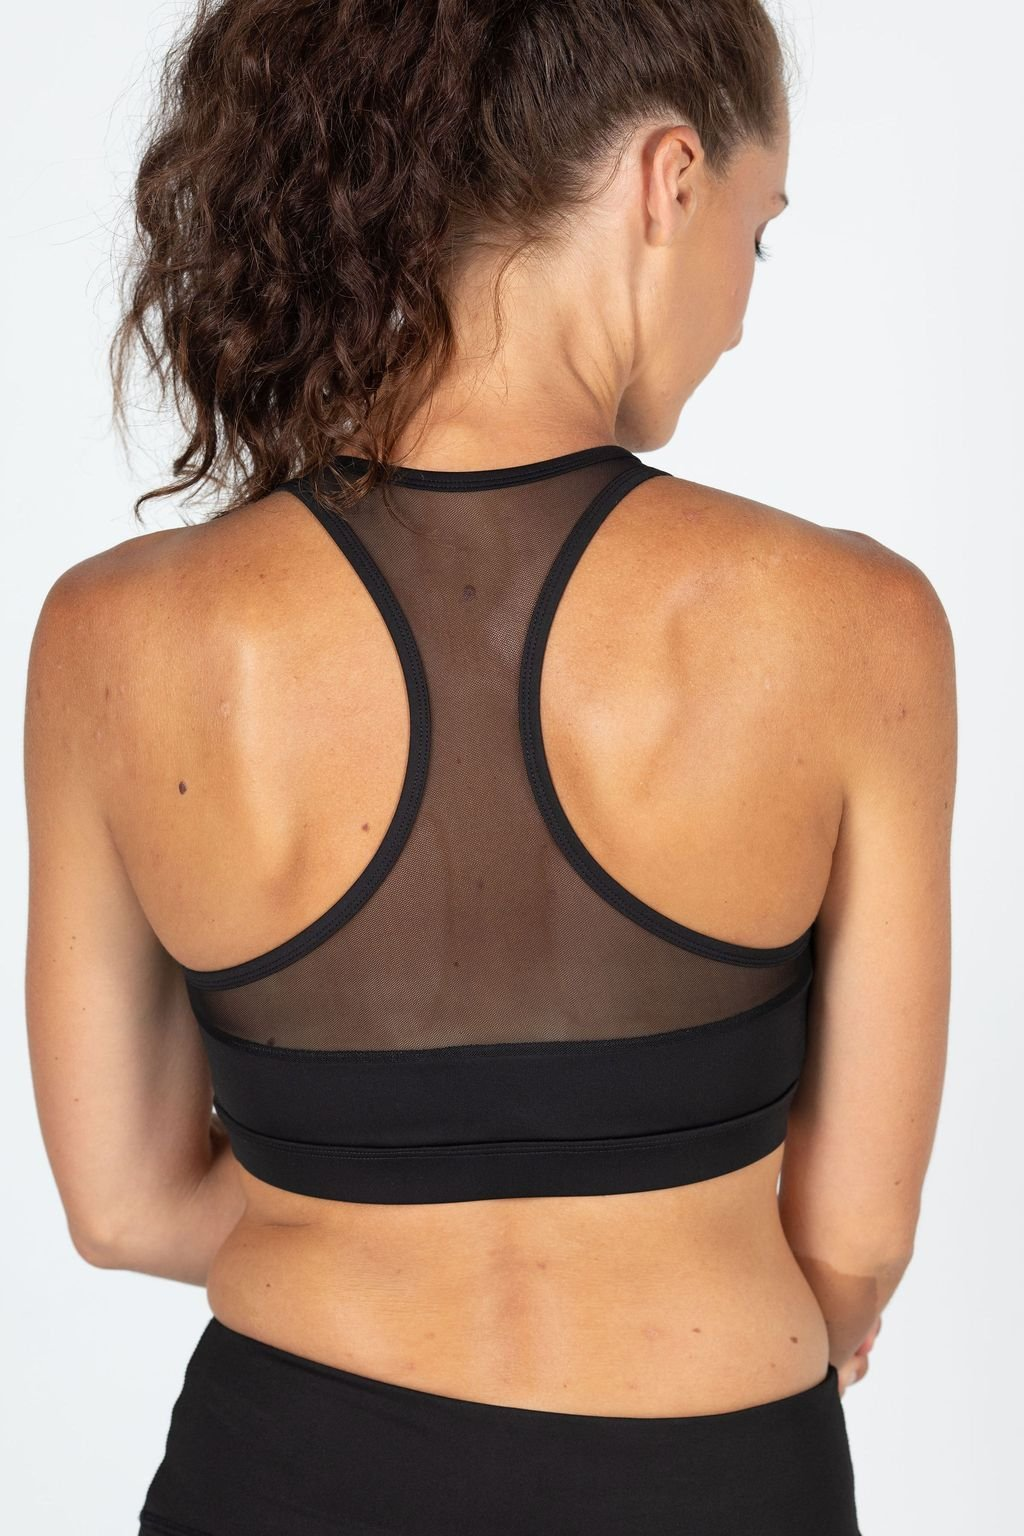 RACERBACK BRA MESH INSERTS - No image set - Ebony Boutique NZ